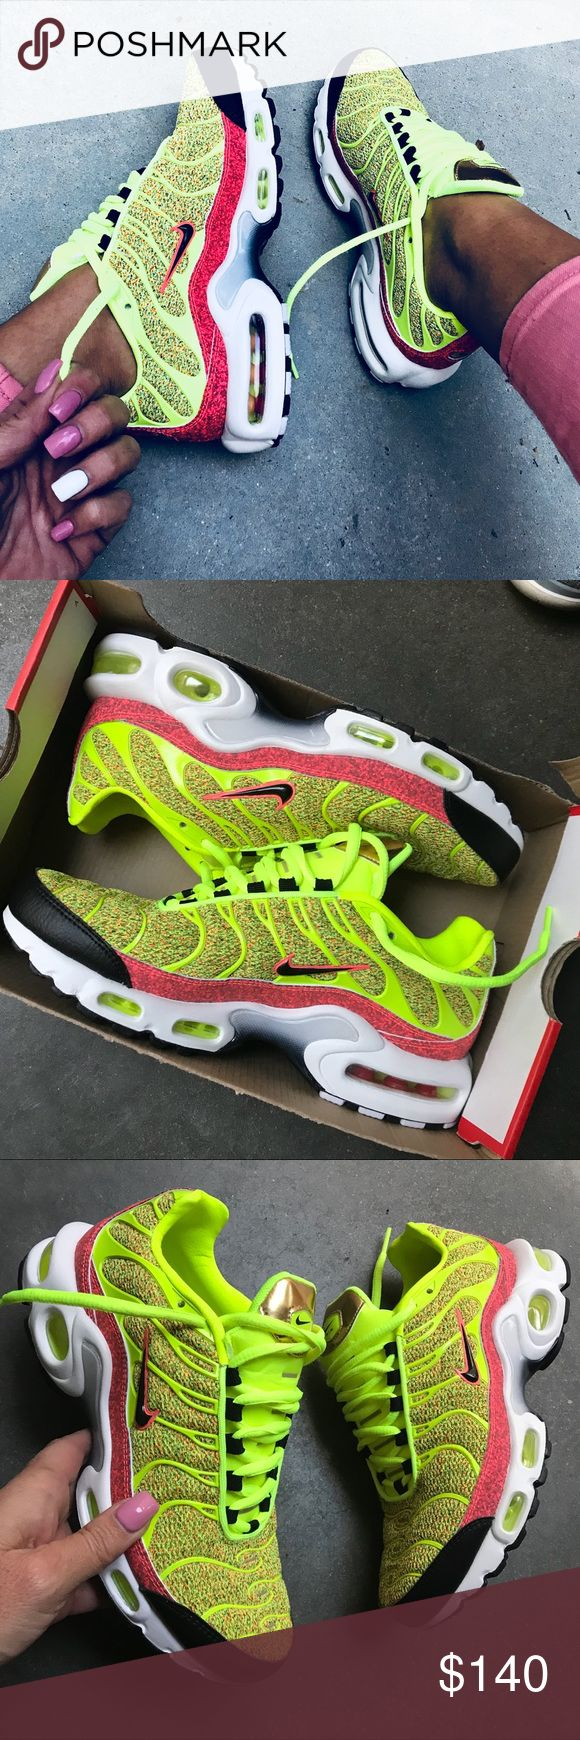 NEW ⚡️ NIKE AIR MAX PLUS SPECIAL EDITION SZ 9.5 BRAND NEW, NIKE AIR MAX PLUS TN | SPECIAL EDITION! SZ 9.5 WOMEN ⚡️ NEON VOLT  THESE ARE SOME OF MY PERSONAL FAVVVVVORITE NIKES ⚡️ TONS OF COMPLIMENTS ON THESE BABIES. YOU WILL BE NOTICED! ⚡️ I AM MODELING MY PERSONAL PAIR. (Cover photo is the only photo that is filtered)  Ships same or next day from my smoke free home. NO BOX.   PRICED FIRM, offers will be considered through the offer button only. Bundle to save. ⚡️ FULL RETAIL $160  100%…